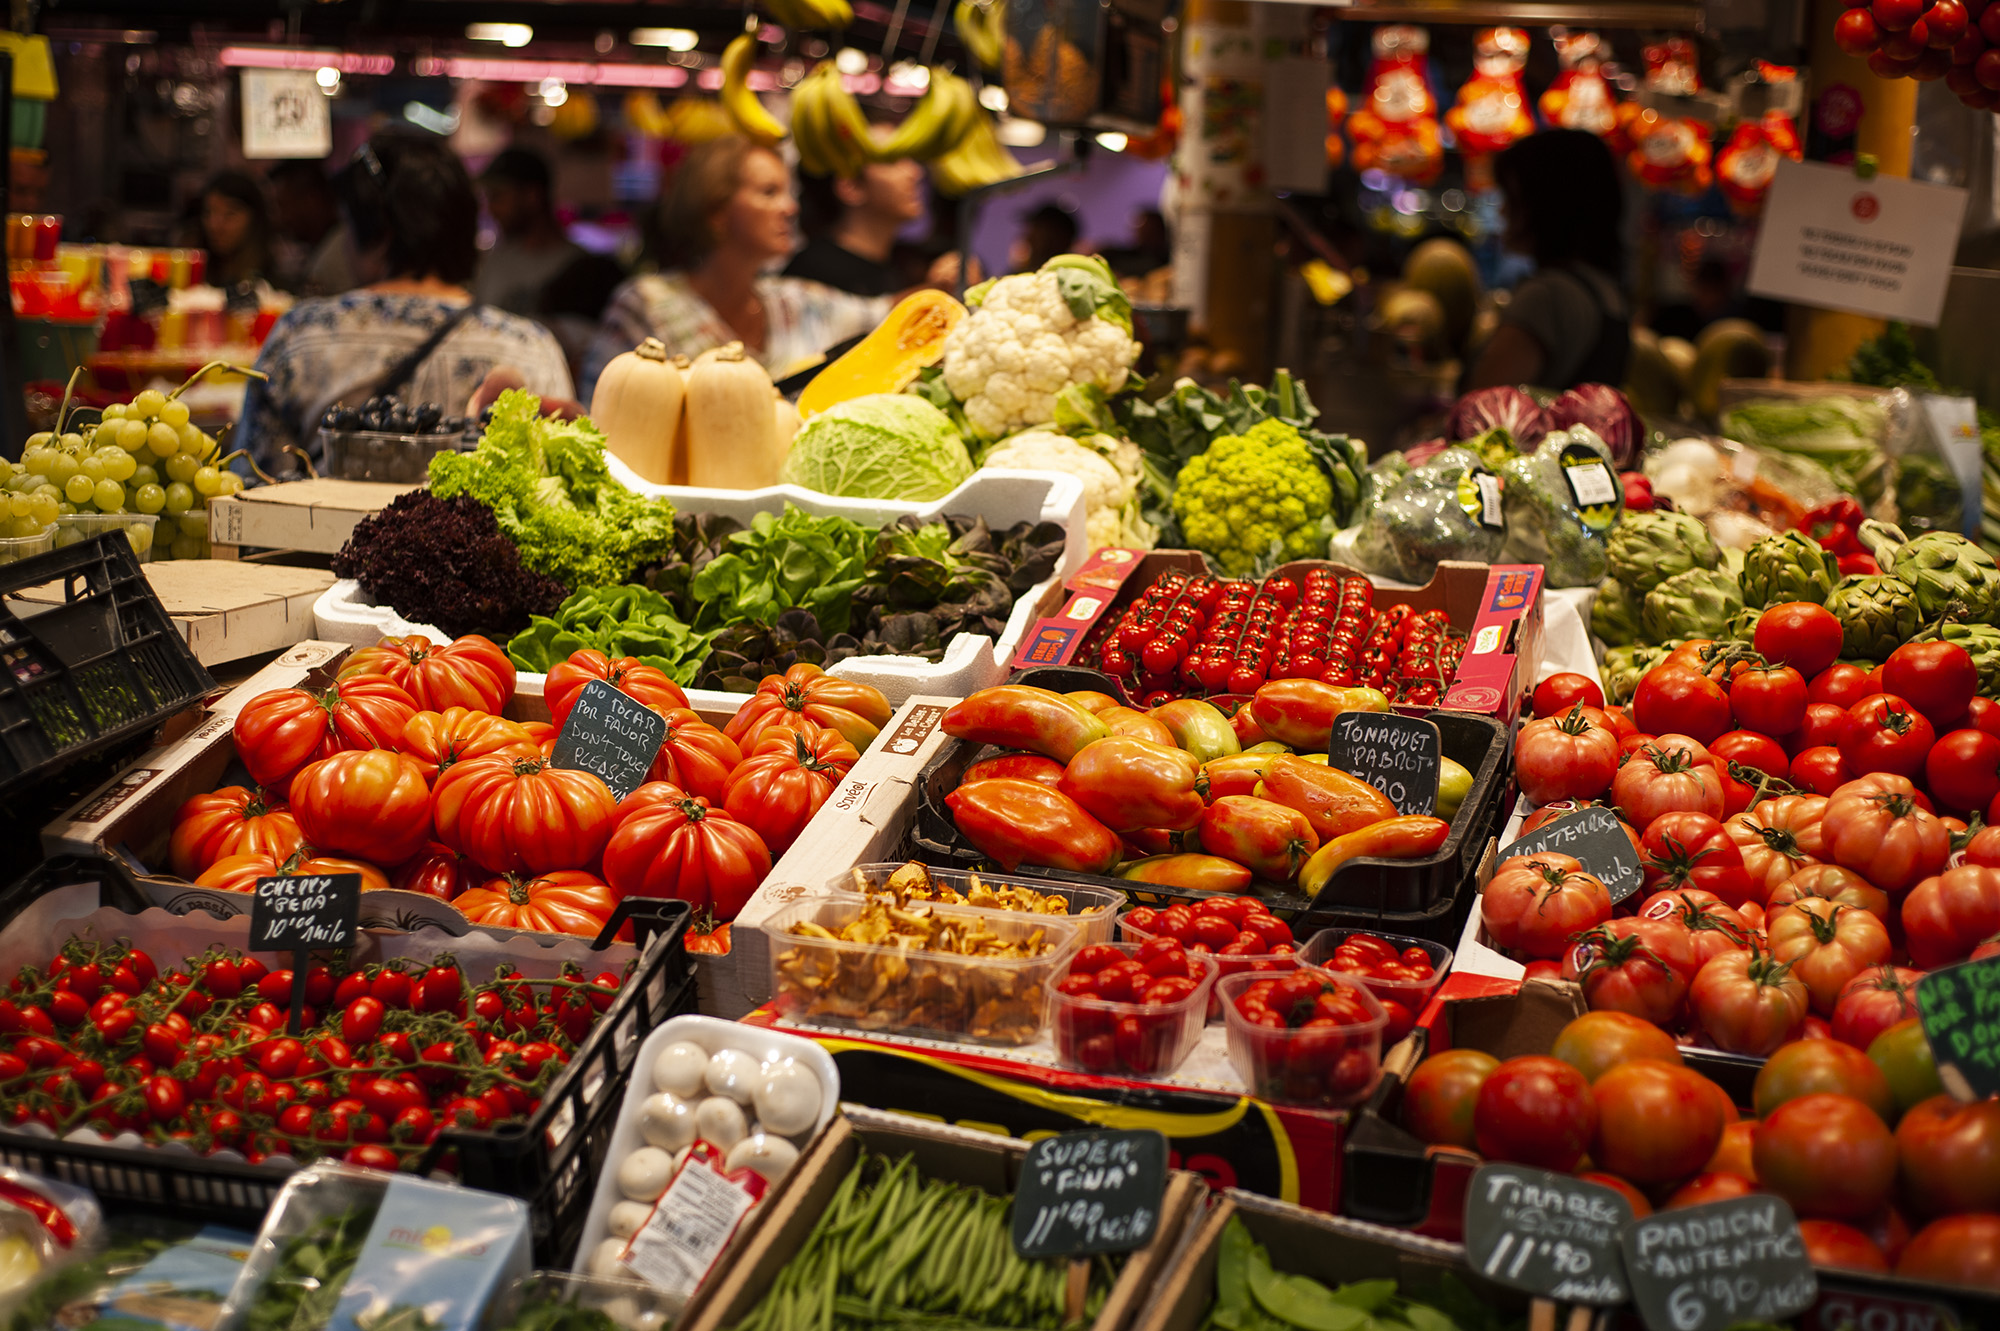 Save lots of money on your tomato purchases (Barcelona, Spain, 2017  ©  JOEL ANG PHOTOGRAPHY)